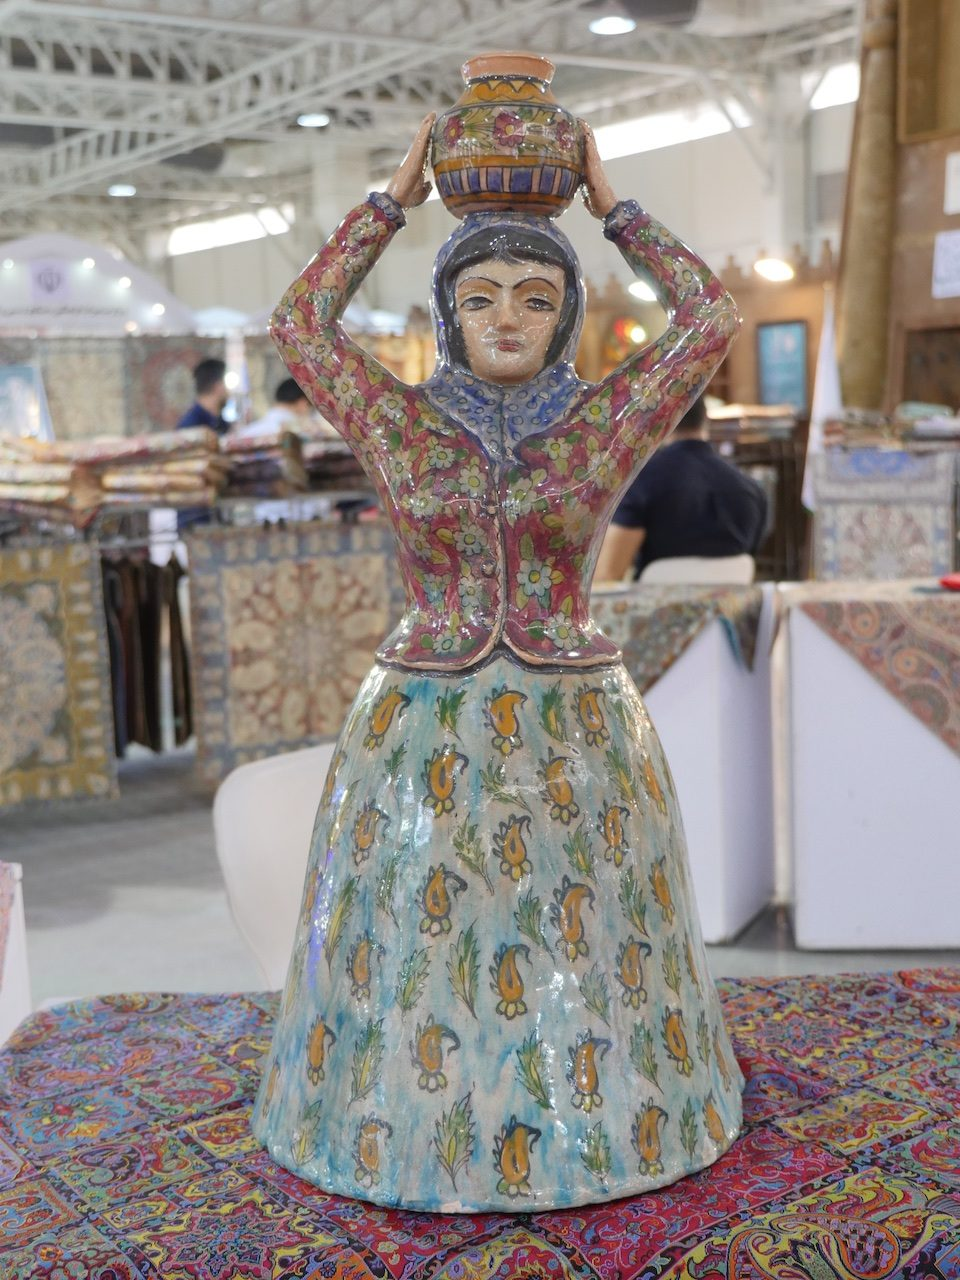 Pottery sitting on a termeh at the Handcrafts Exhibition